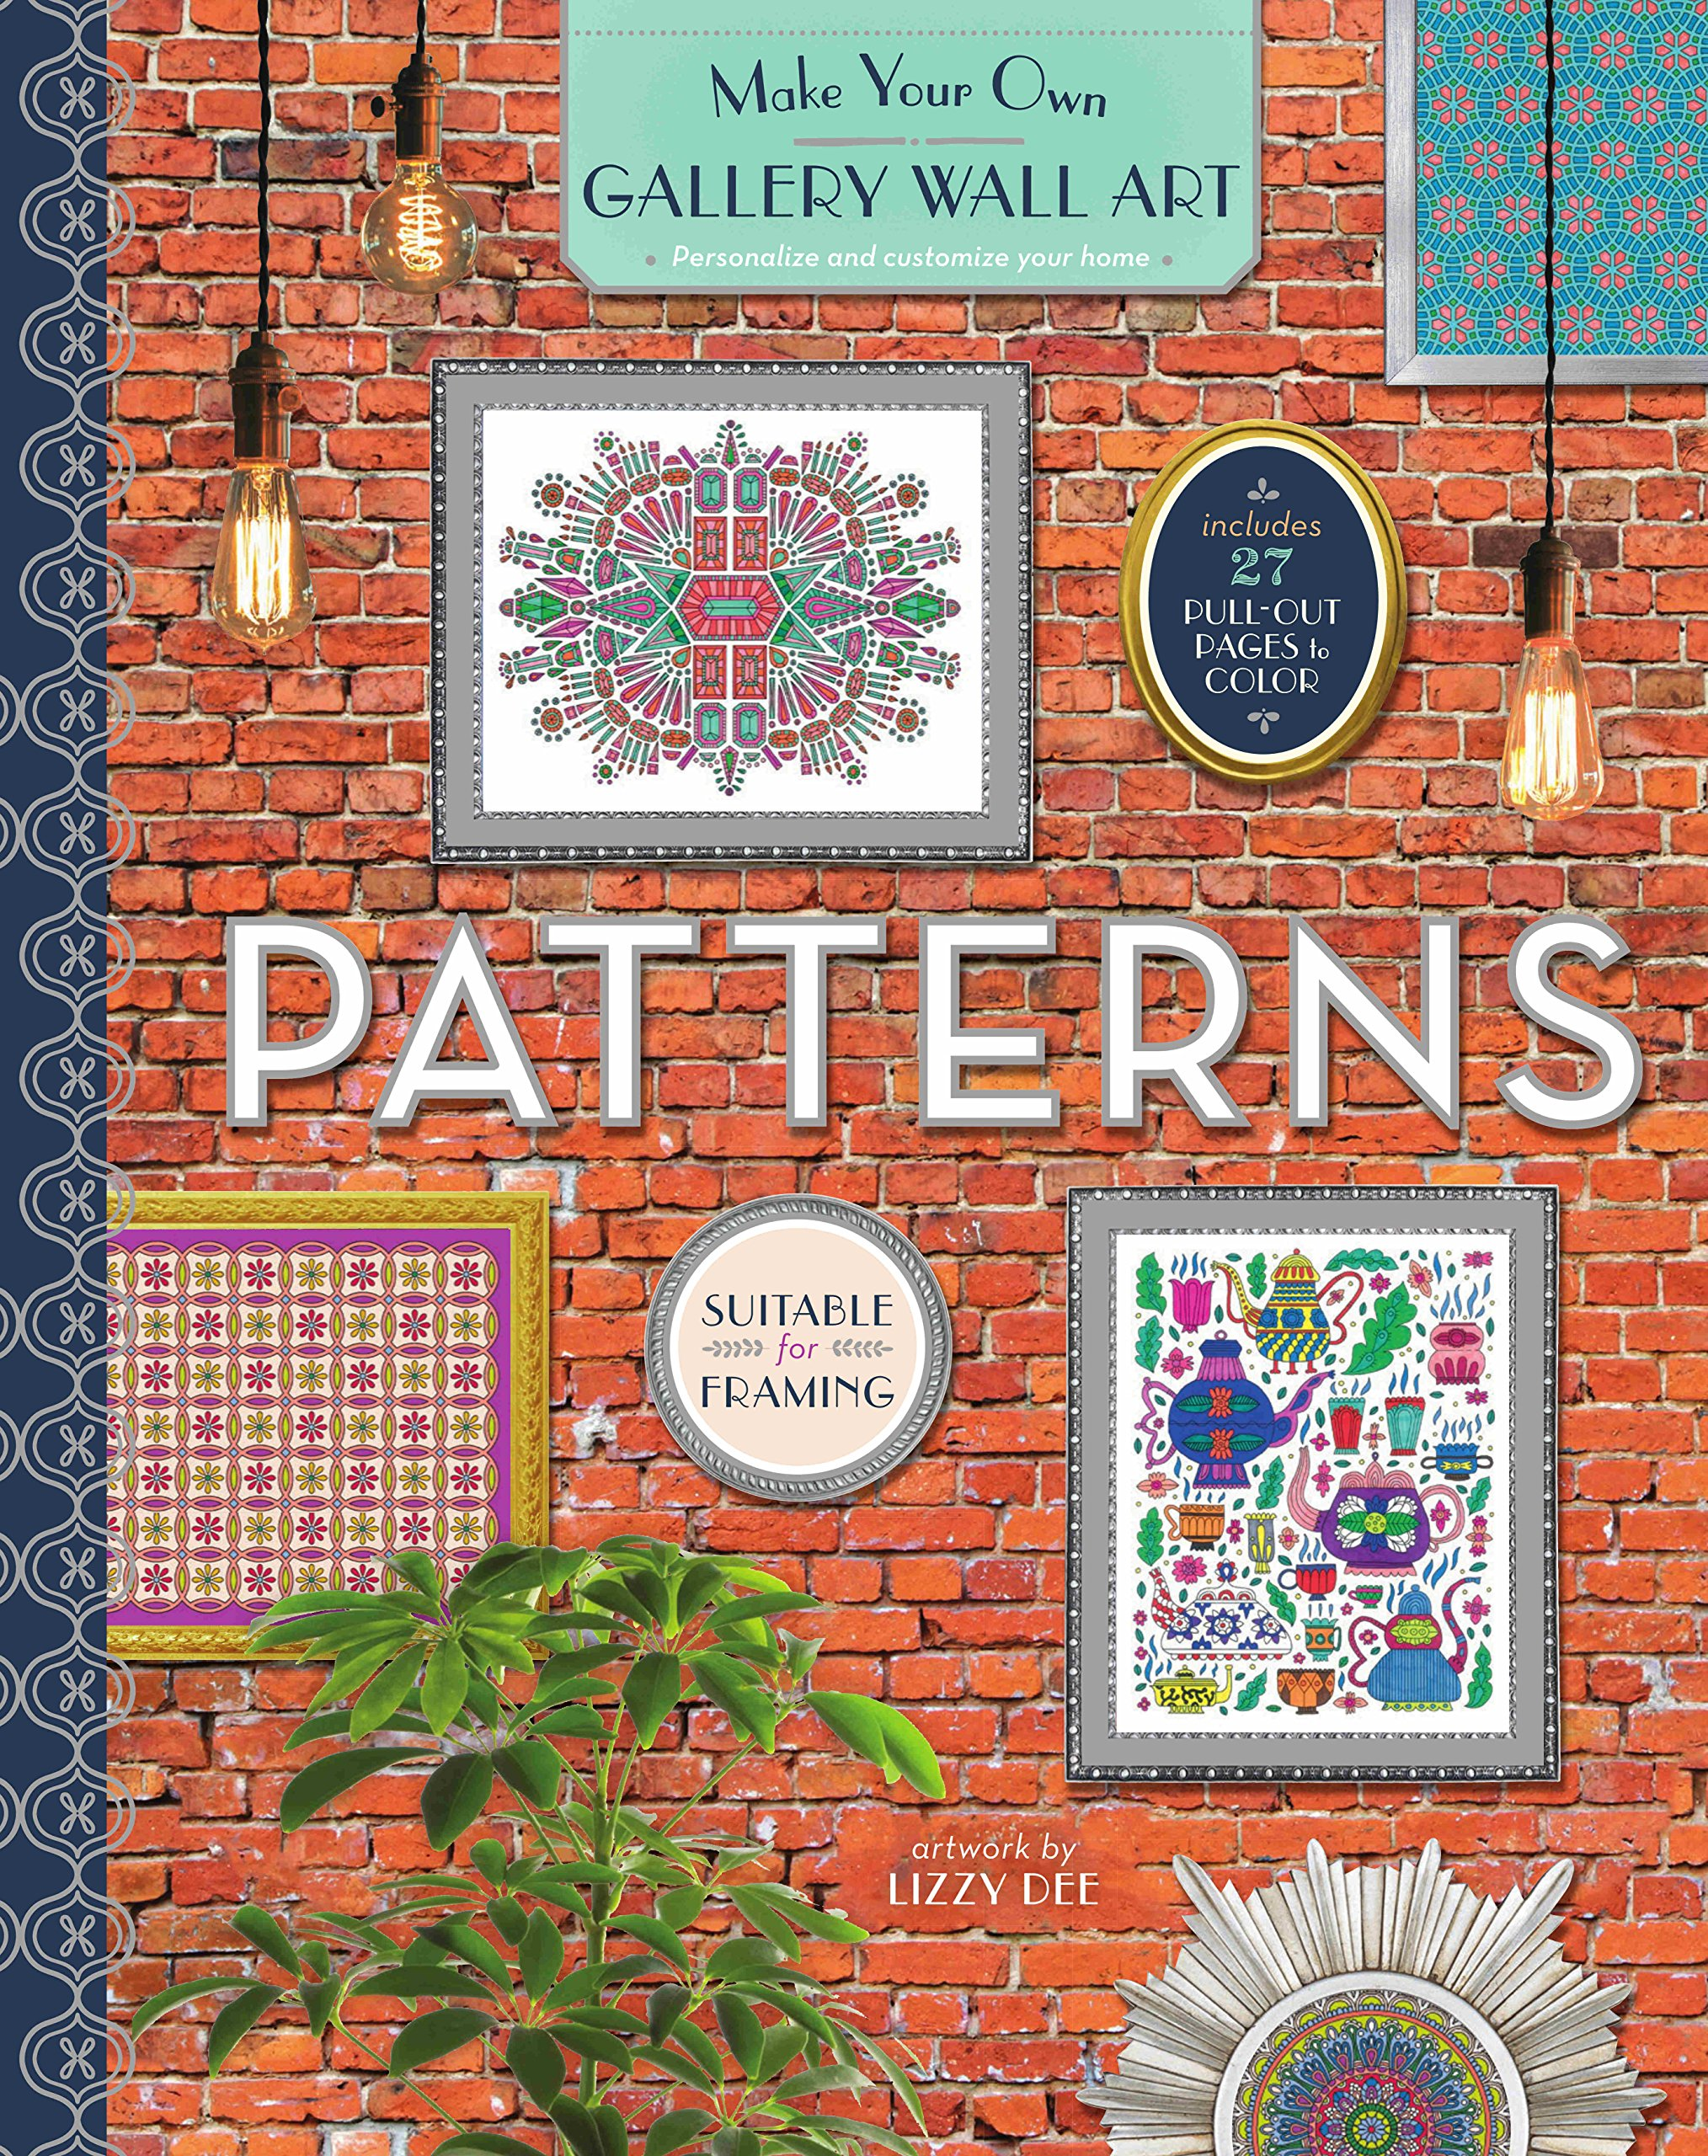 Color of art gallery walls - Amazon Com Gallery Wall Art Patterns Make Your Own Gallery Wall Art 9781474846752 Lizzy Dee Books